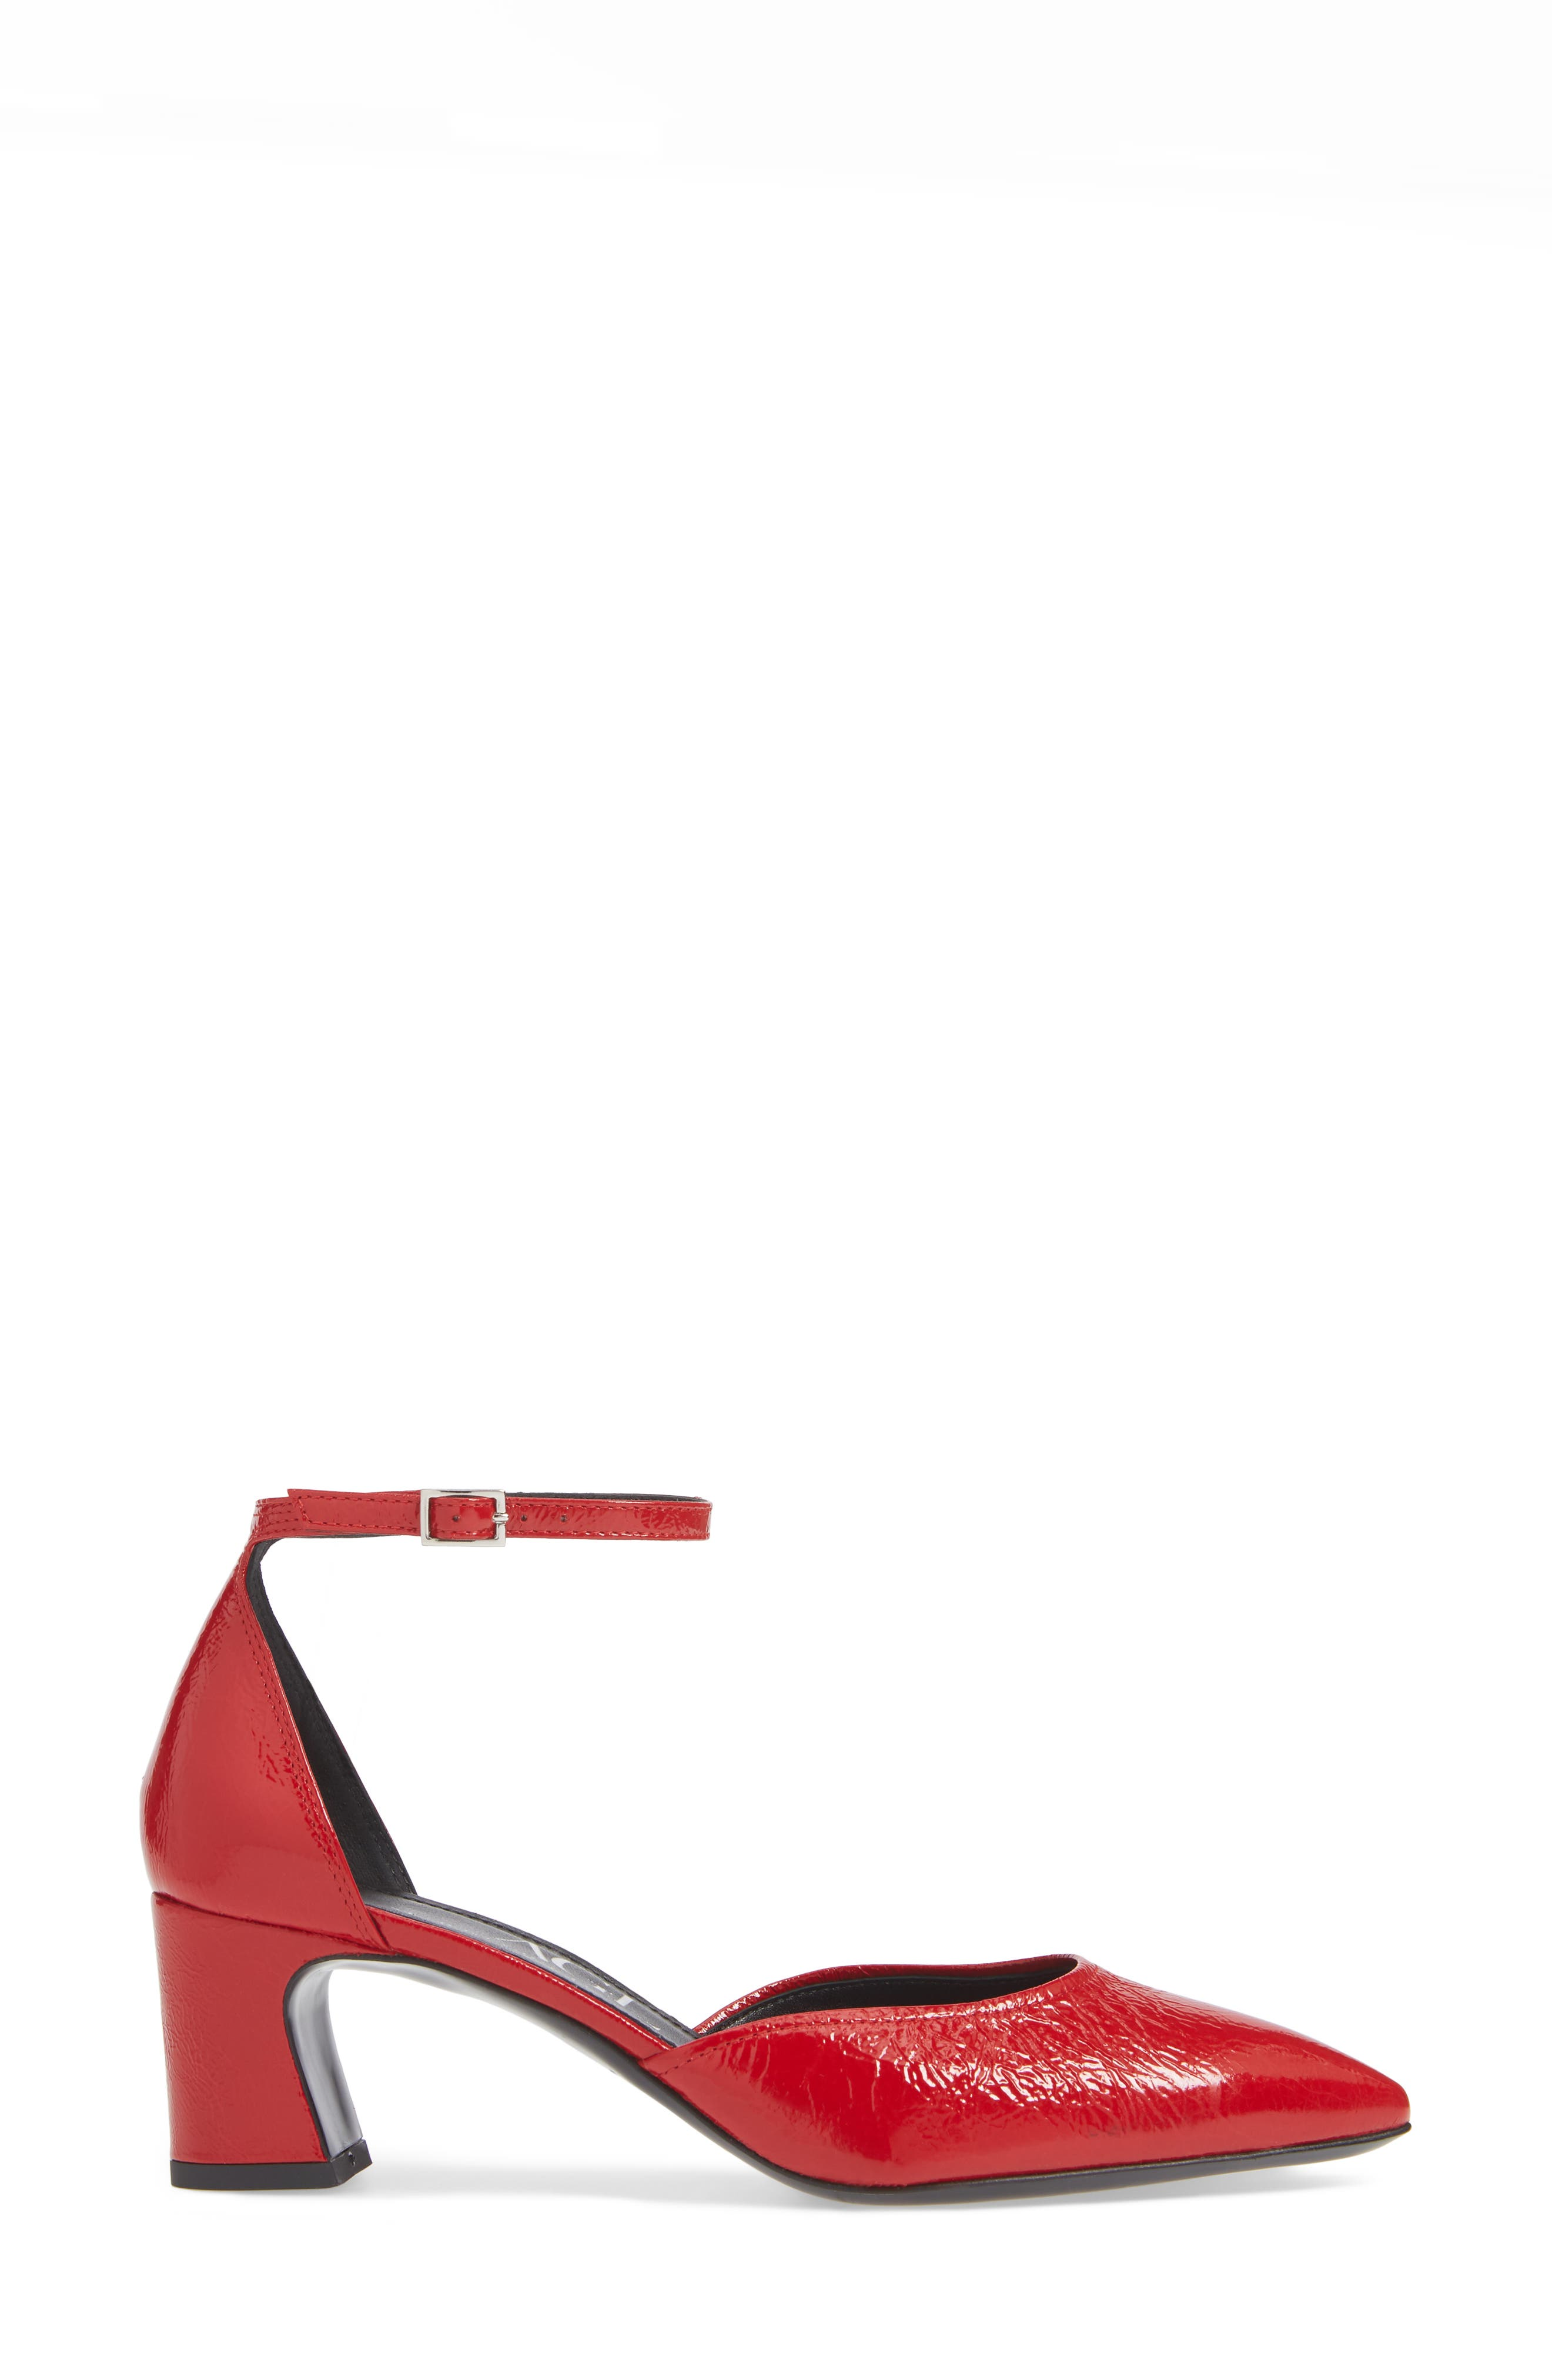 d'Orsay Ankle Strap Pump,                             Alternate thumbnail 3, color,                             RED PATENT